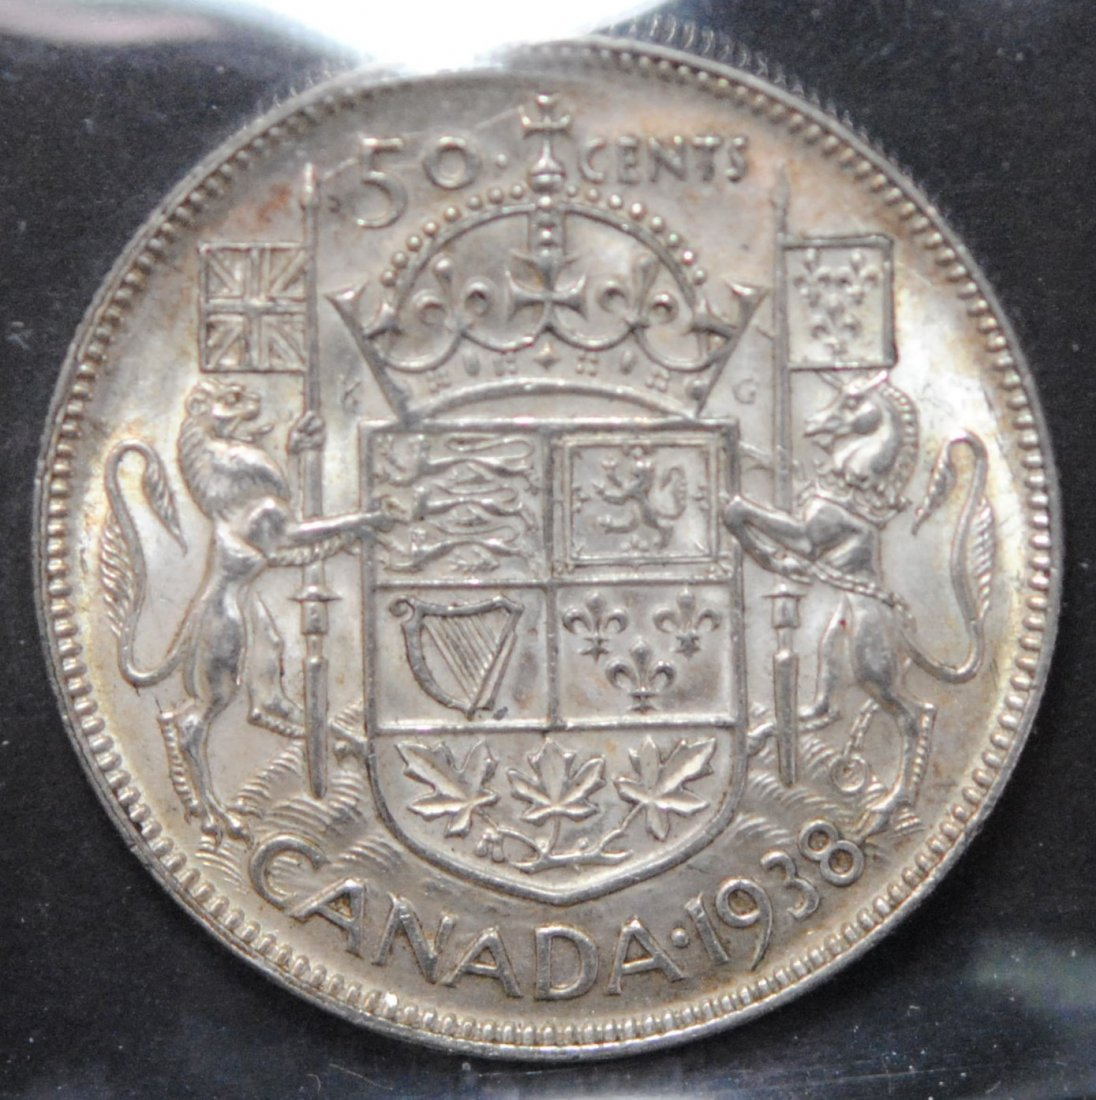 Canada 1938 Fifty Cent ICCS EF45 - 3